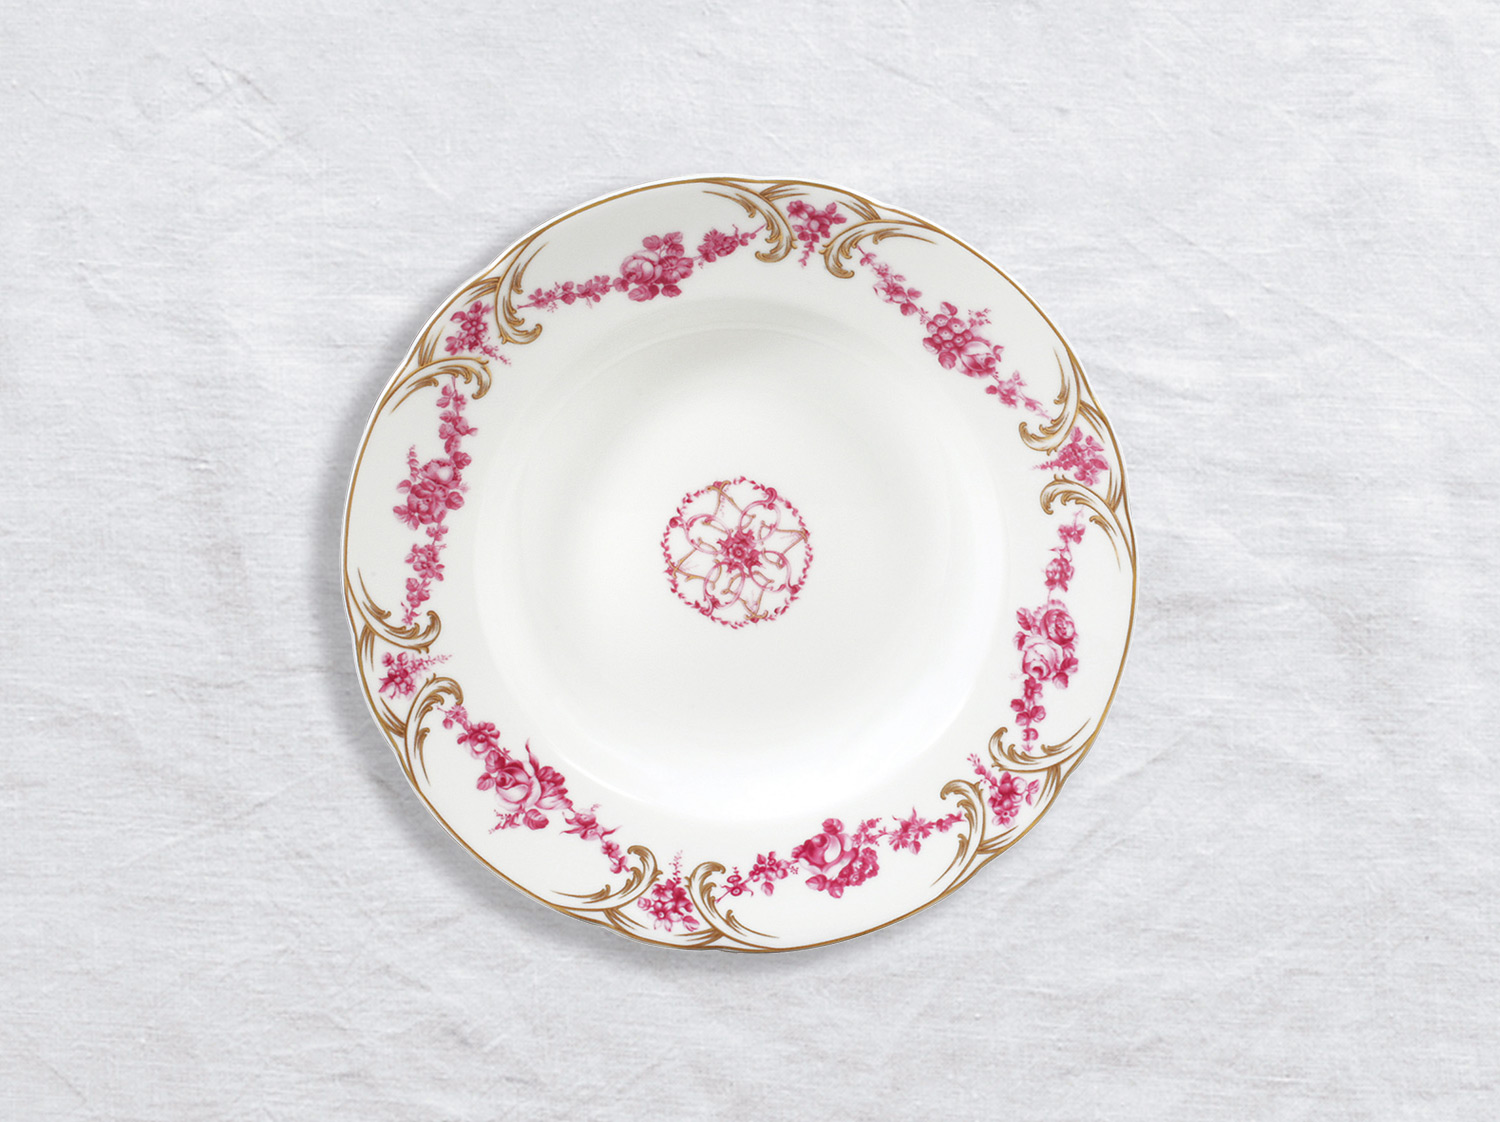 China Rim soup 22,5 cm of the collection Louis xv | Bernardaud